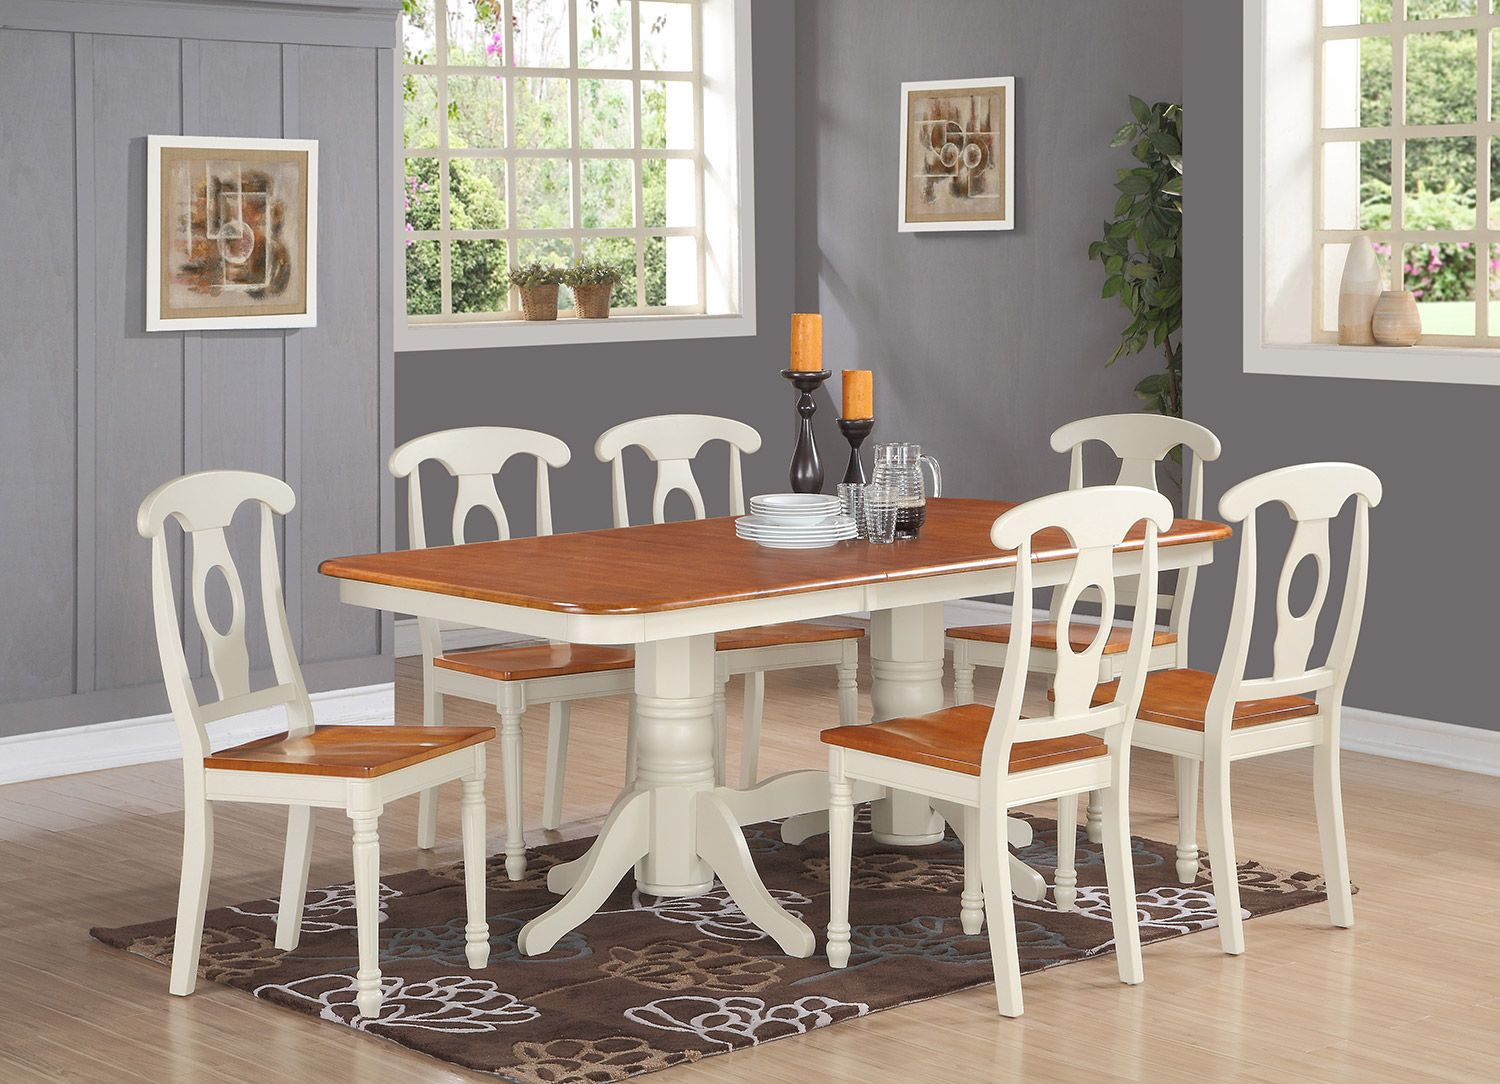 East West Furniture 9Piece Dining Settable With A Leaf And 8 Amusing 9 Pc Dining Room Sets Review